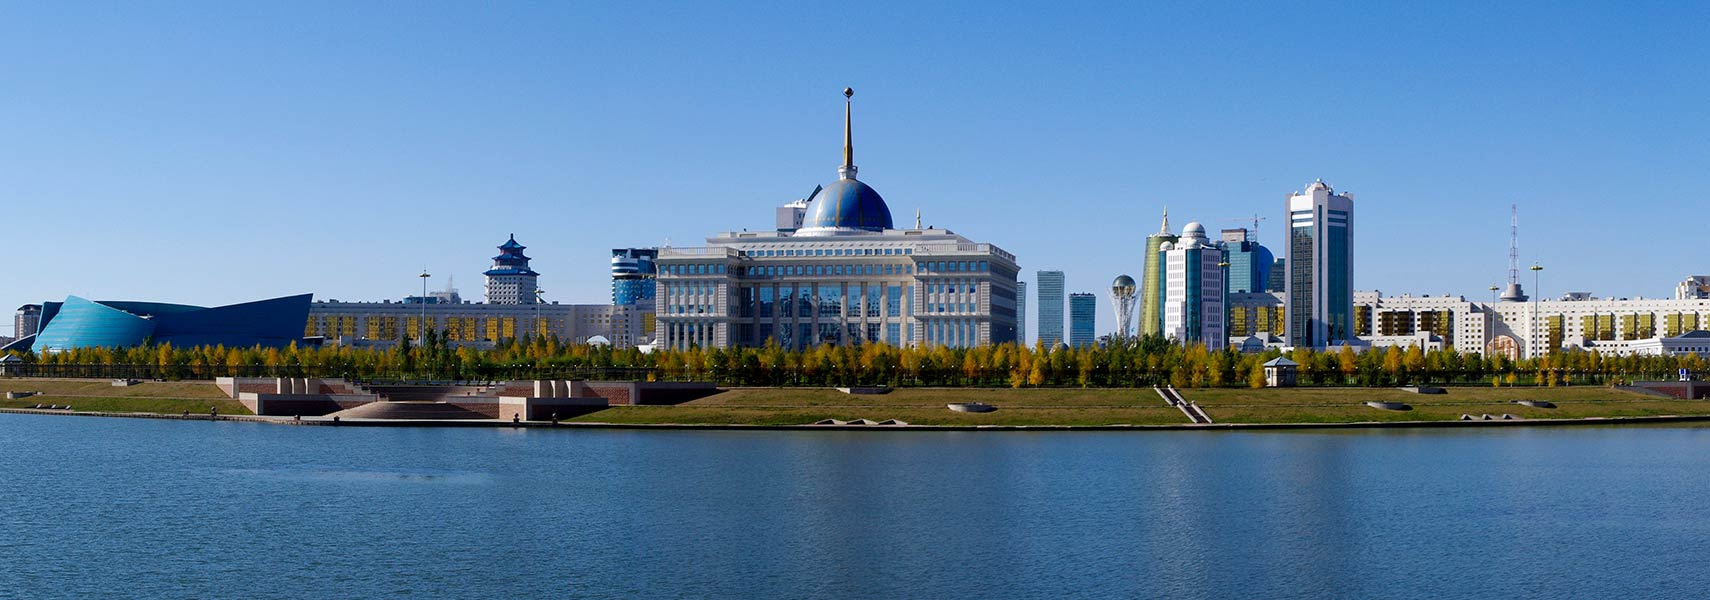 Kazakhstan government headquarters in Astana